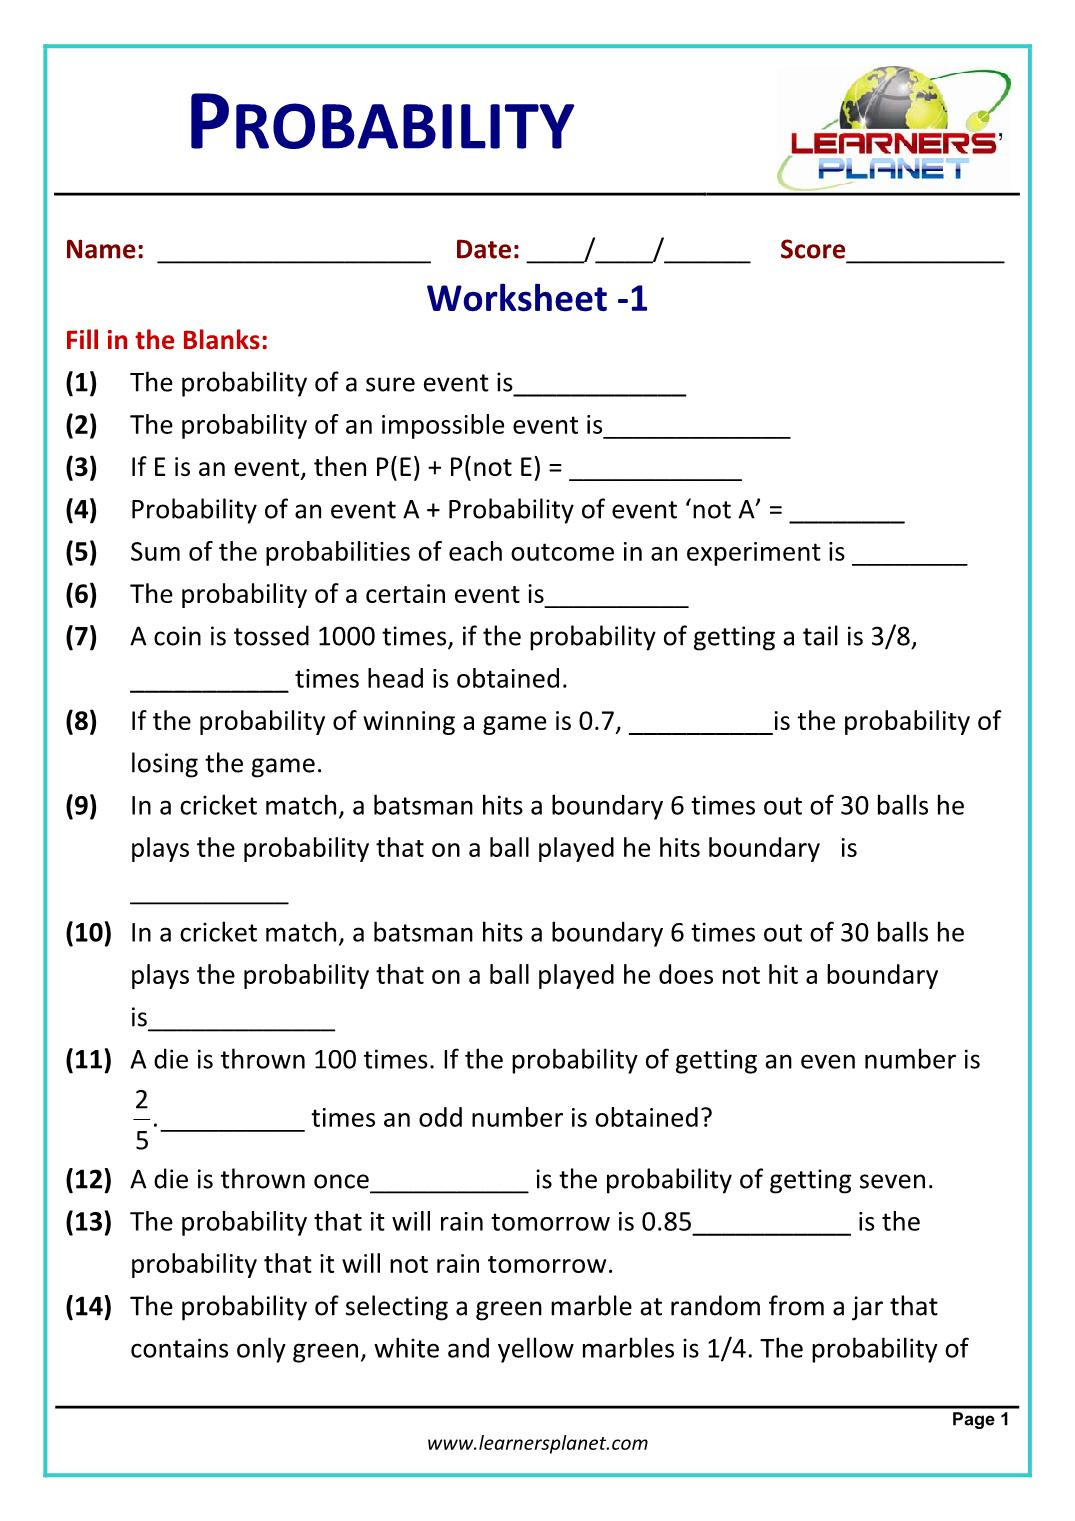 Probability Worksheet 5th Grade is Pre Algebra 8th Grade Math Snow Woman Coloring Pages